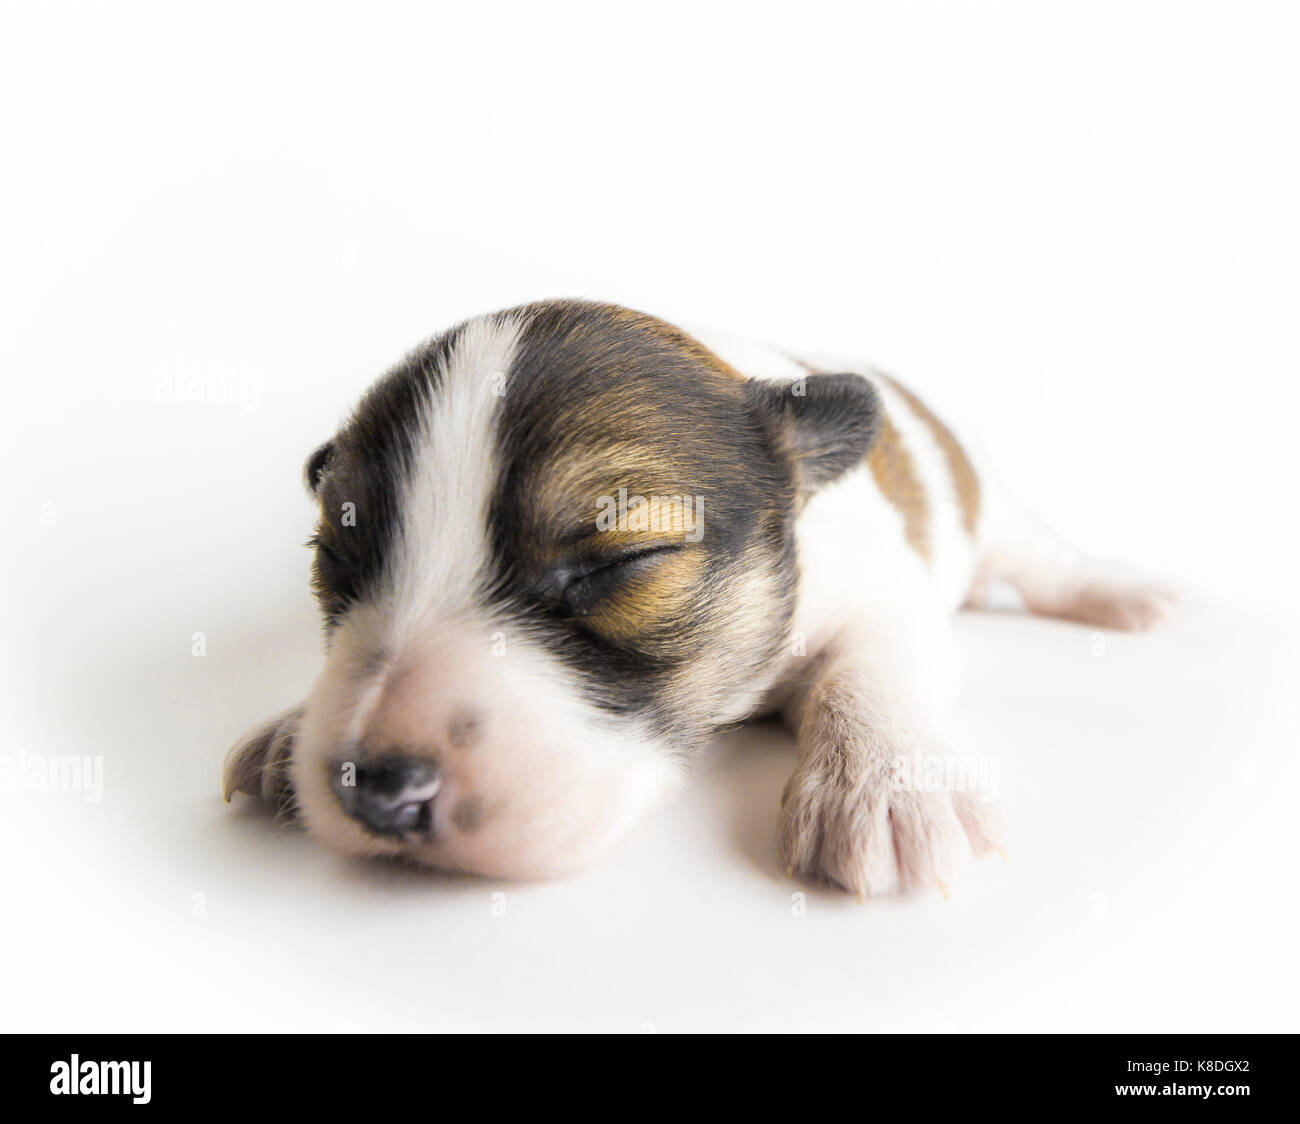 A newborn blind puppy of brown coloring close-up on a white background. - Stock Image